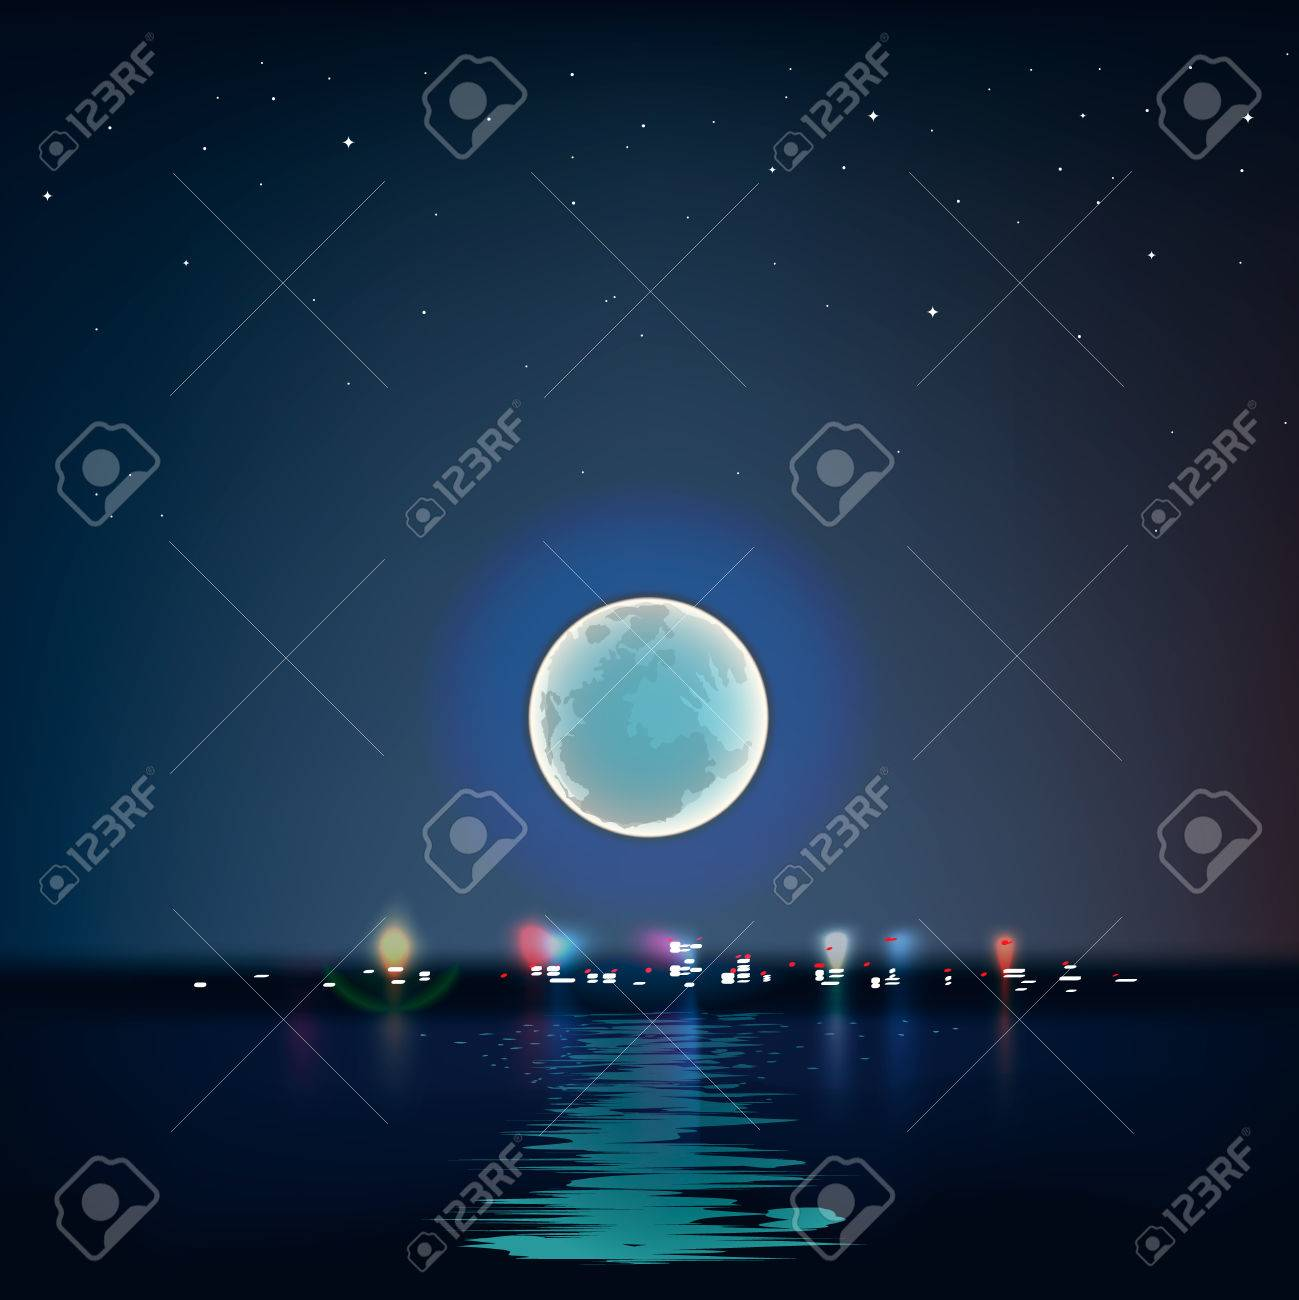 Full blue moon over cold night water, vector Eps10 illustration. - 22298977